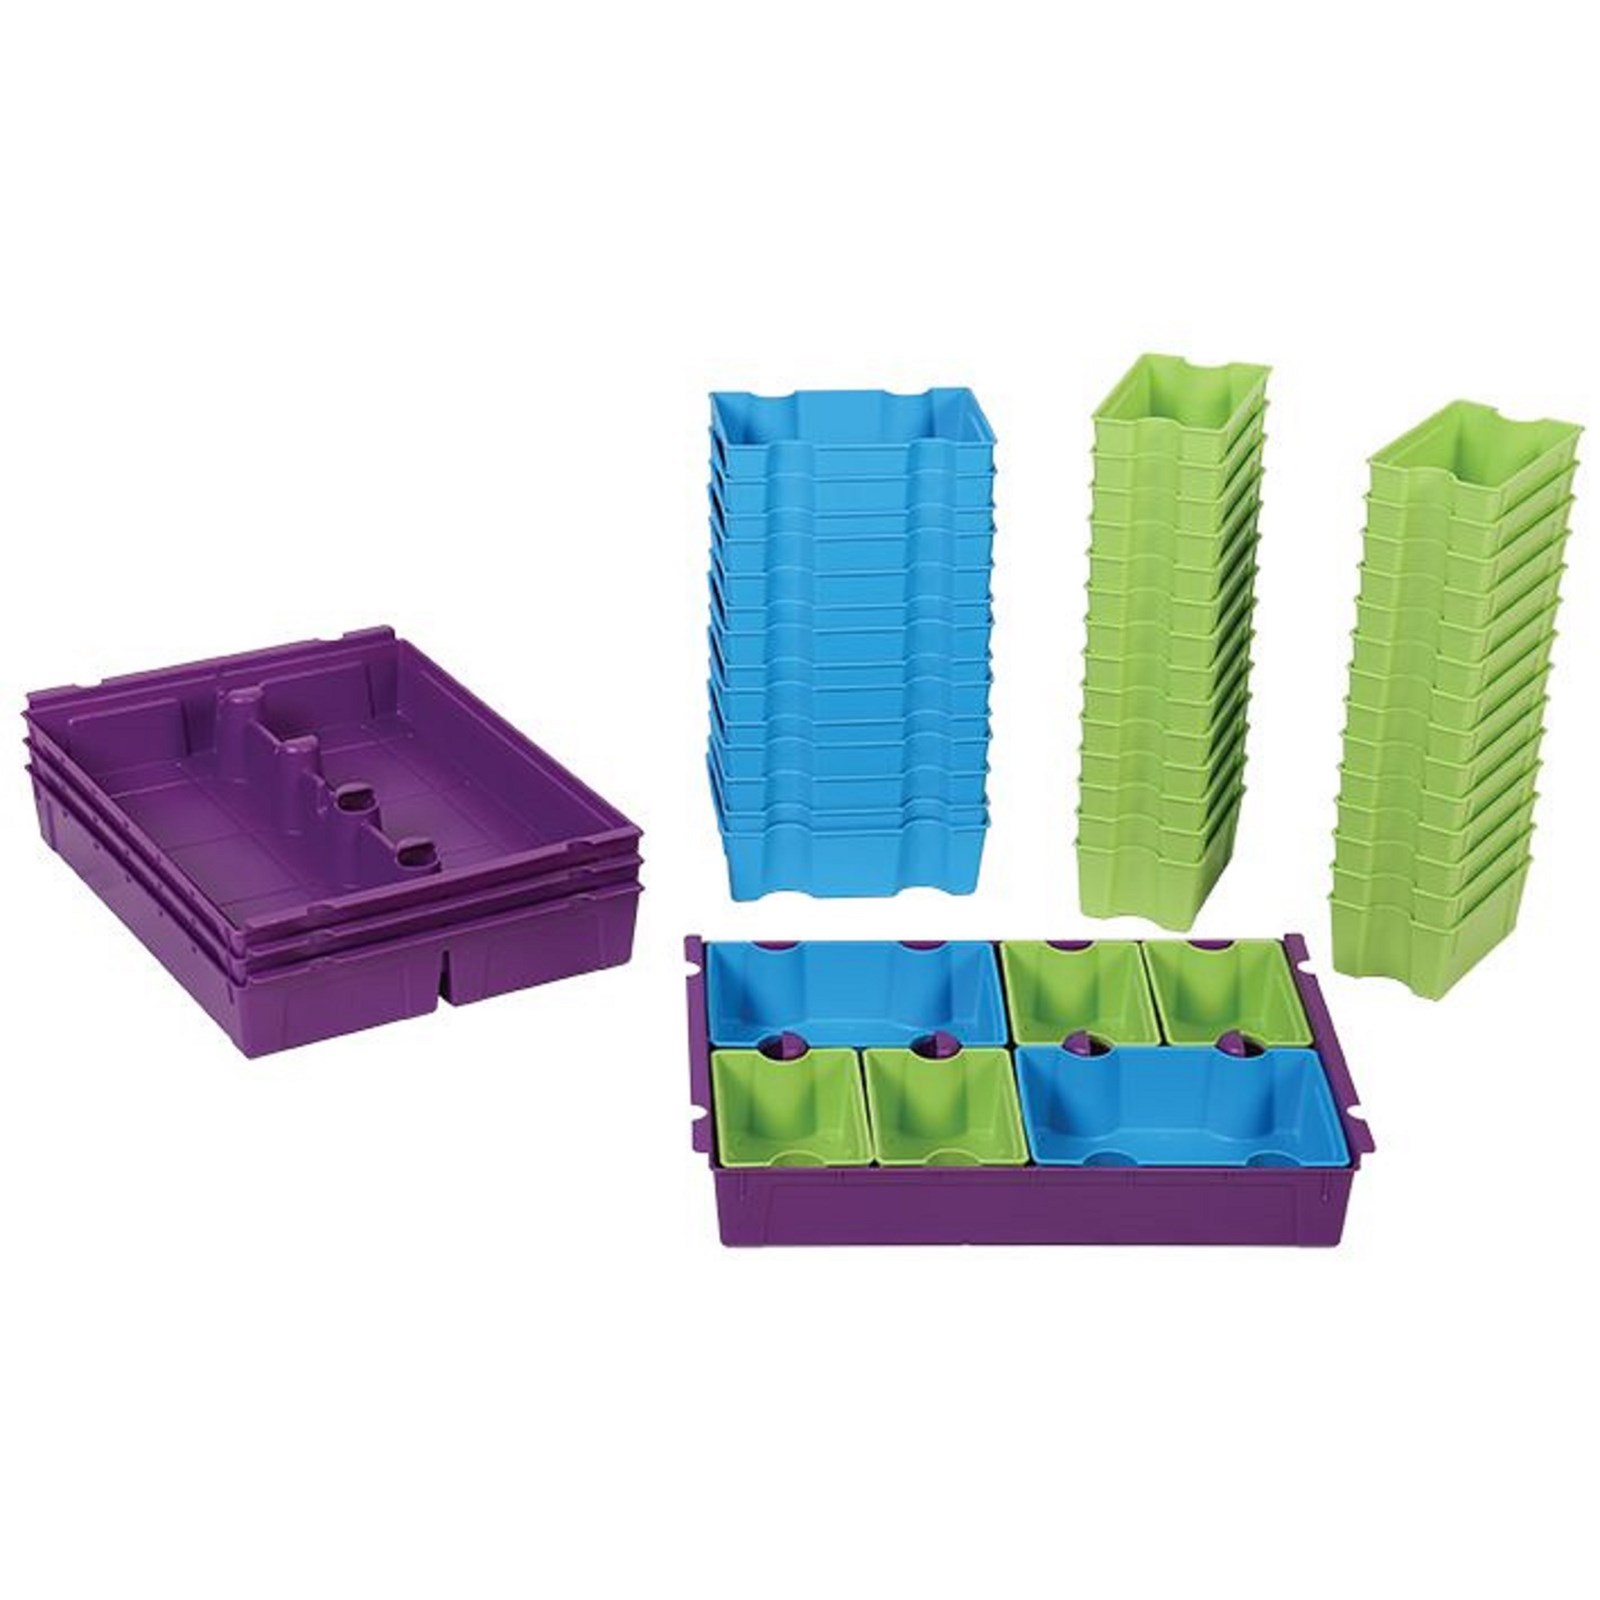 Gratnells SortEd Inserts